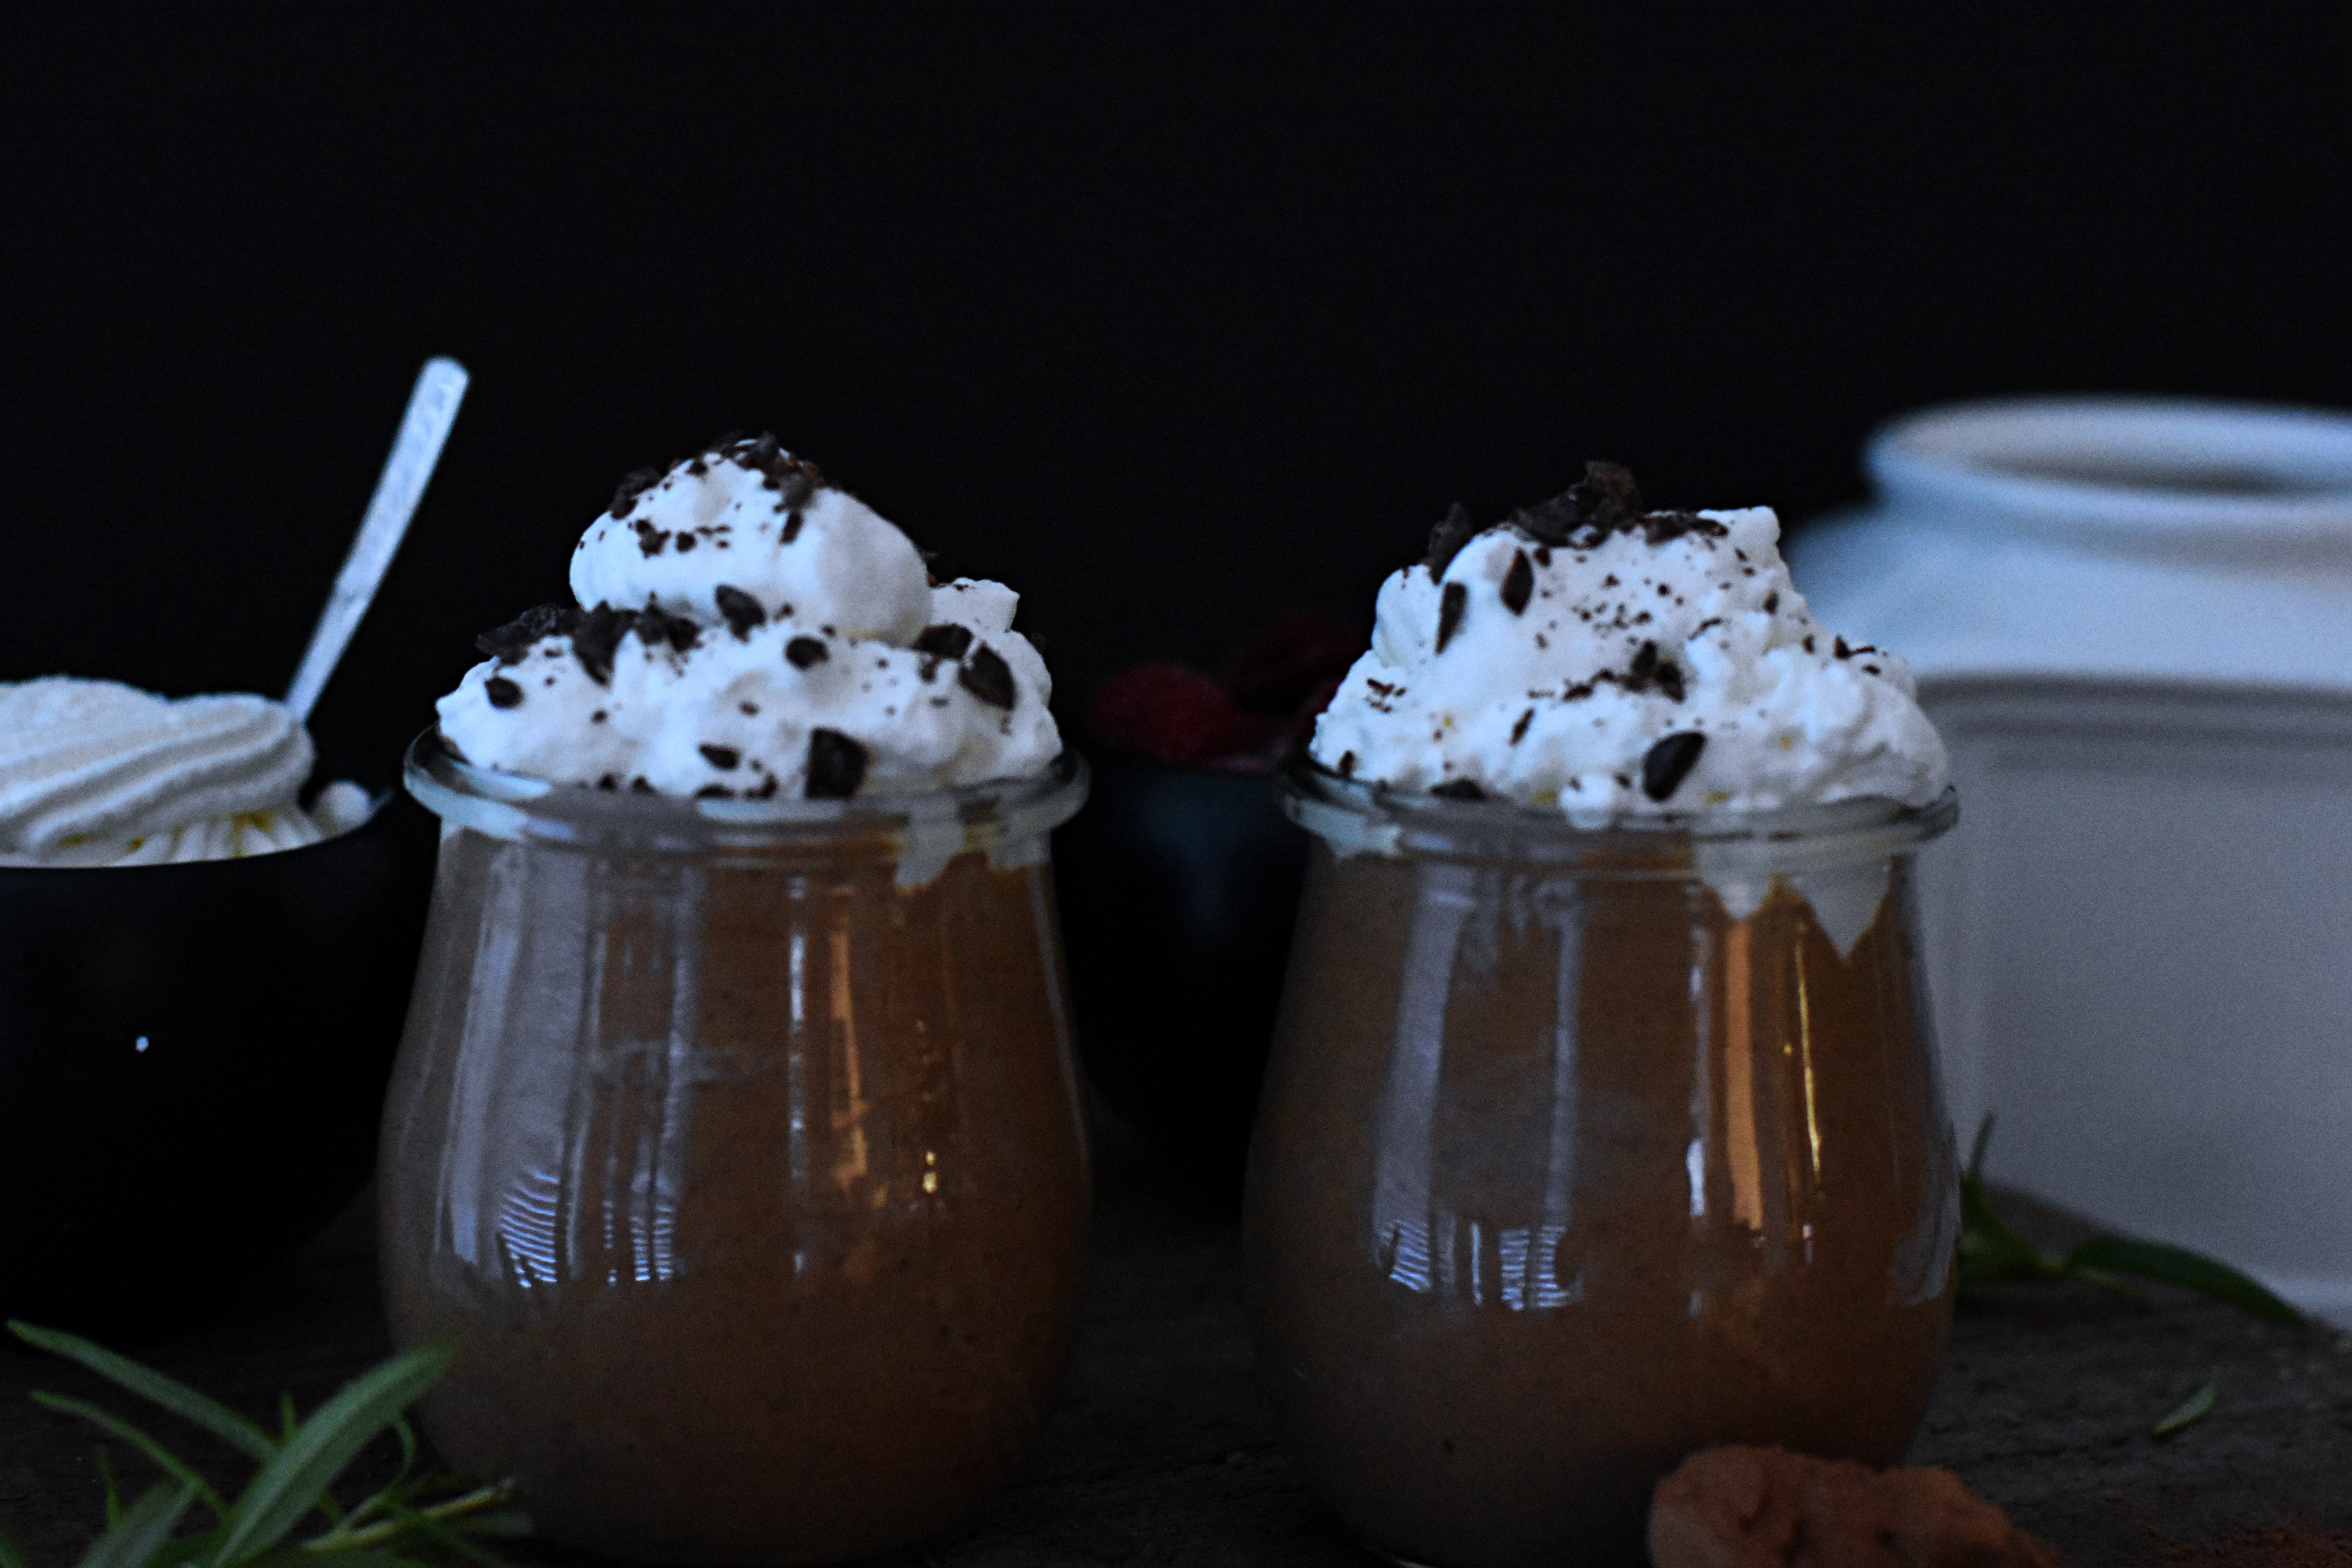 Chocolate mousse with homemade whipped cream